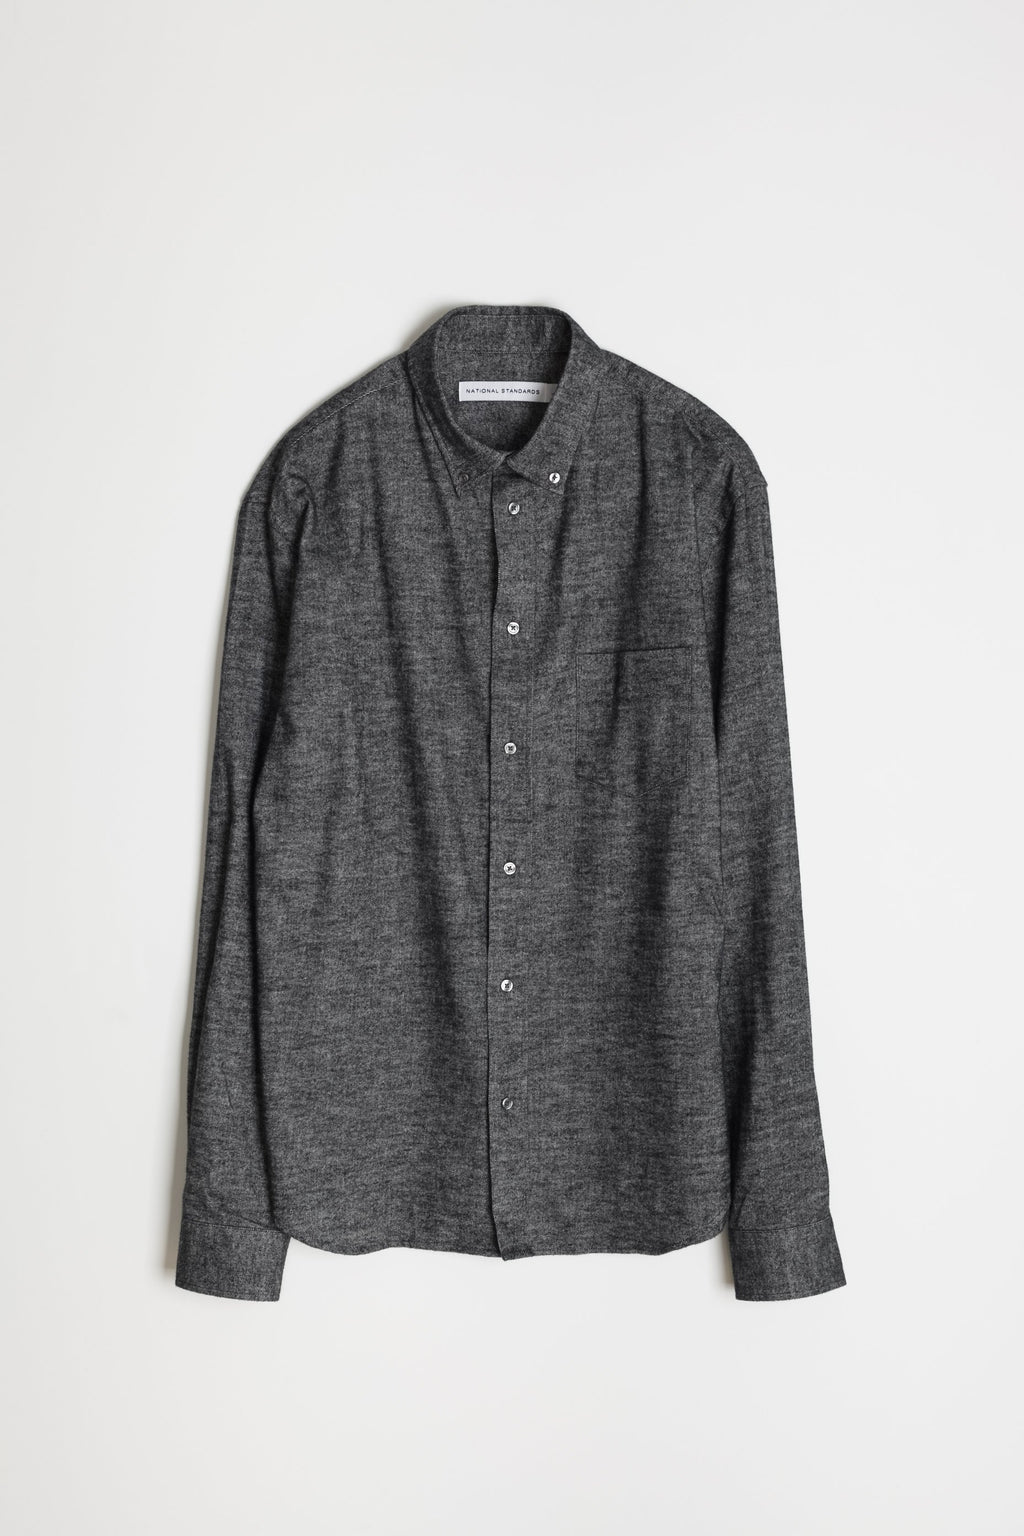 Japanese Brushed Twill Flannel in Black 06